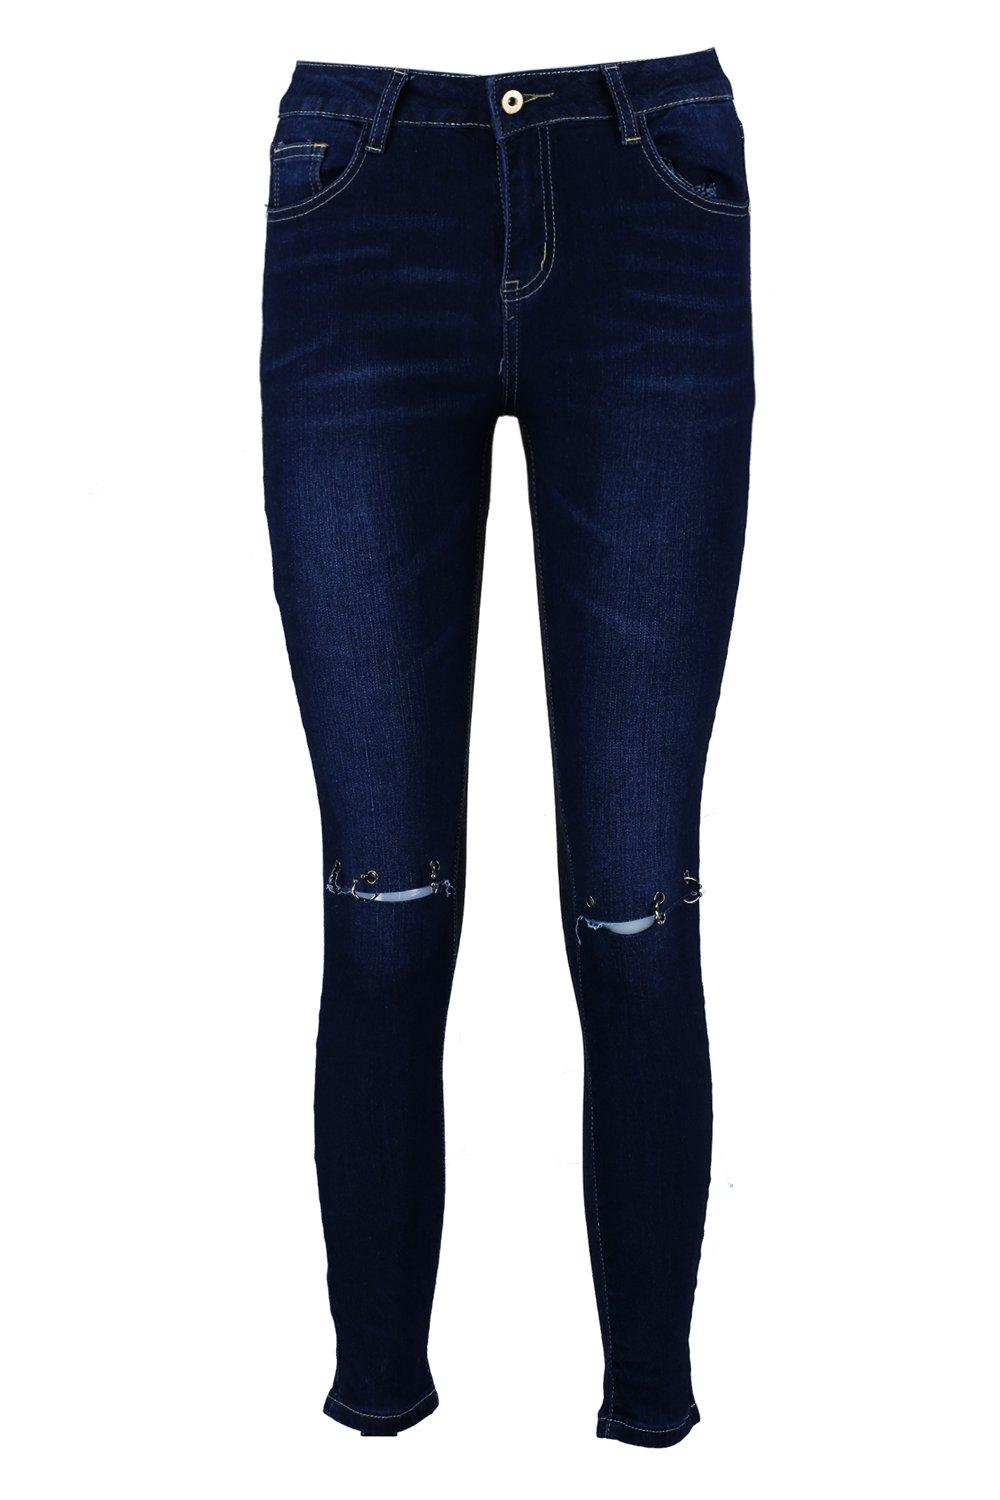 Skinny Mid Distressed Rise Jeans Mid Rise Distressed XwRS7B